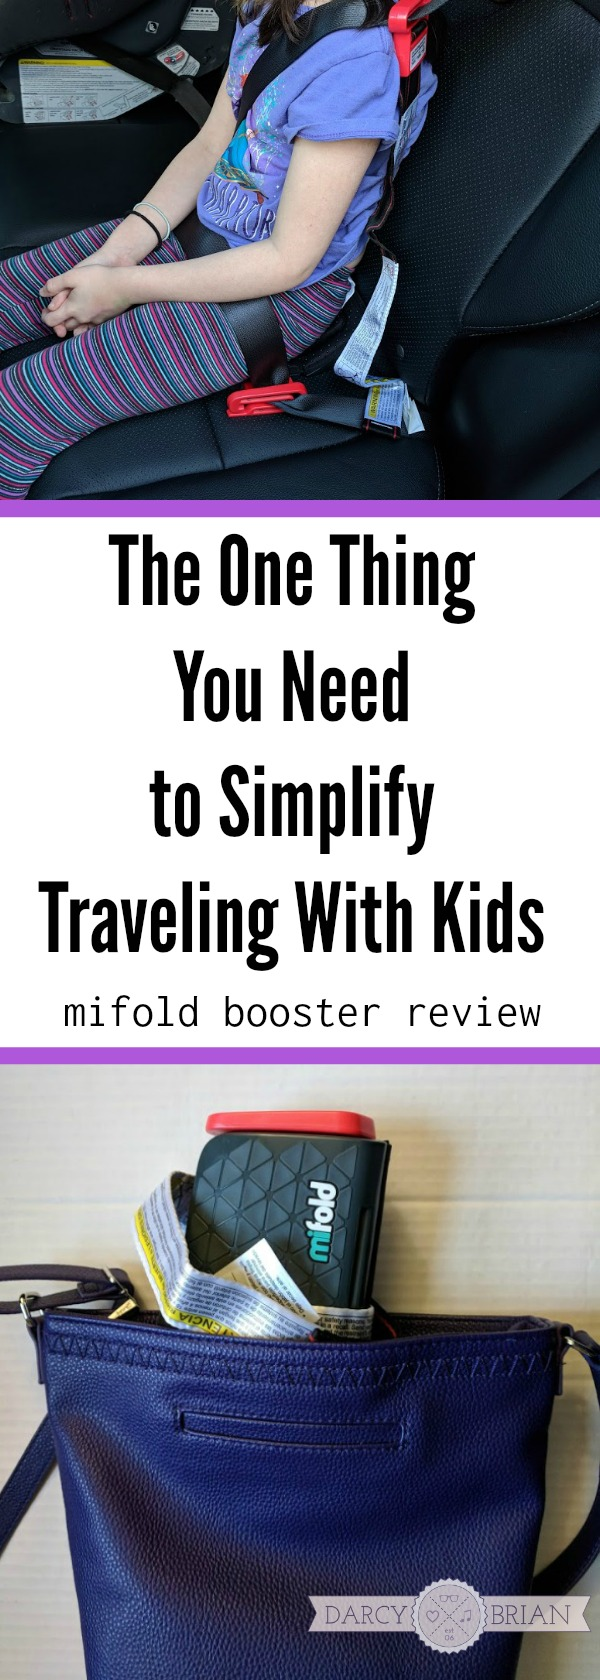 AD: Planning your next family vacation but not sure what to do about booster seats? Whether you are renting a car, flying, taking the train, or want to use taxis, Uber, or Lyft to get around at your destination, learn more about this portable booster seat that is perfect for family travel! It's also perfect for carpooling! The One Thing You Need to Simplify Traveling With Kids #familytravel #kids